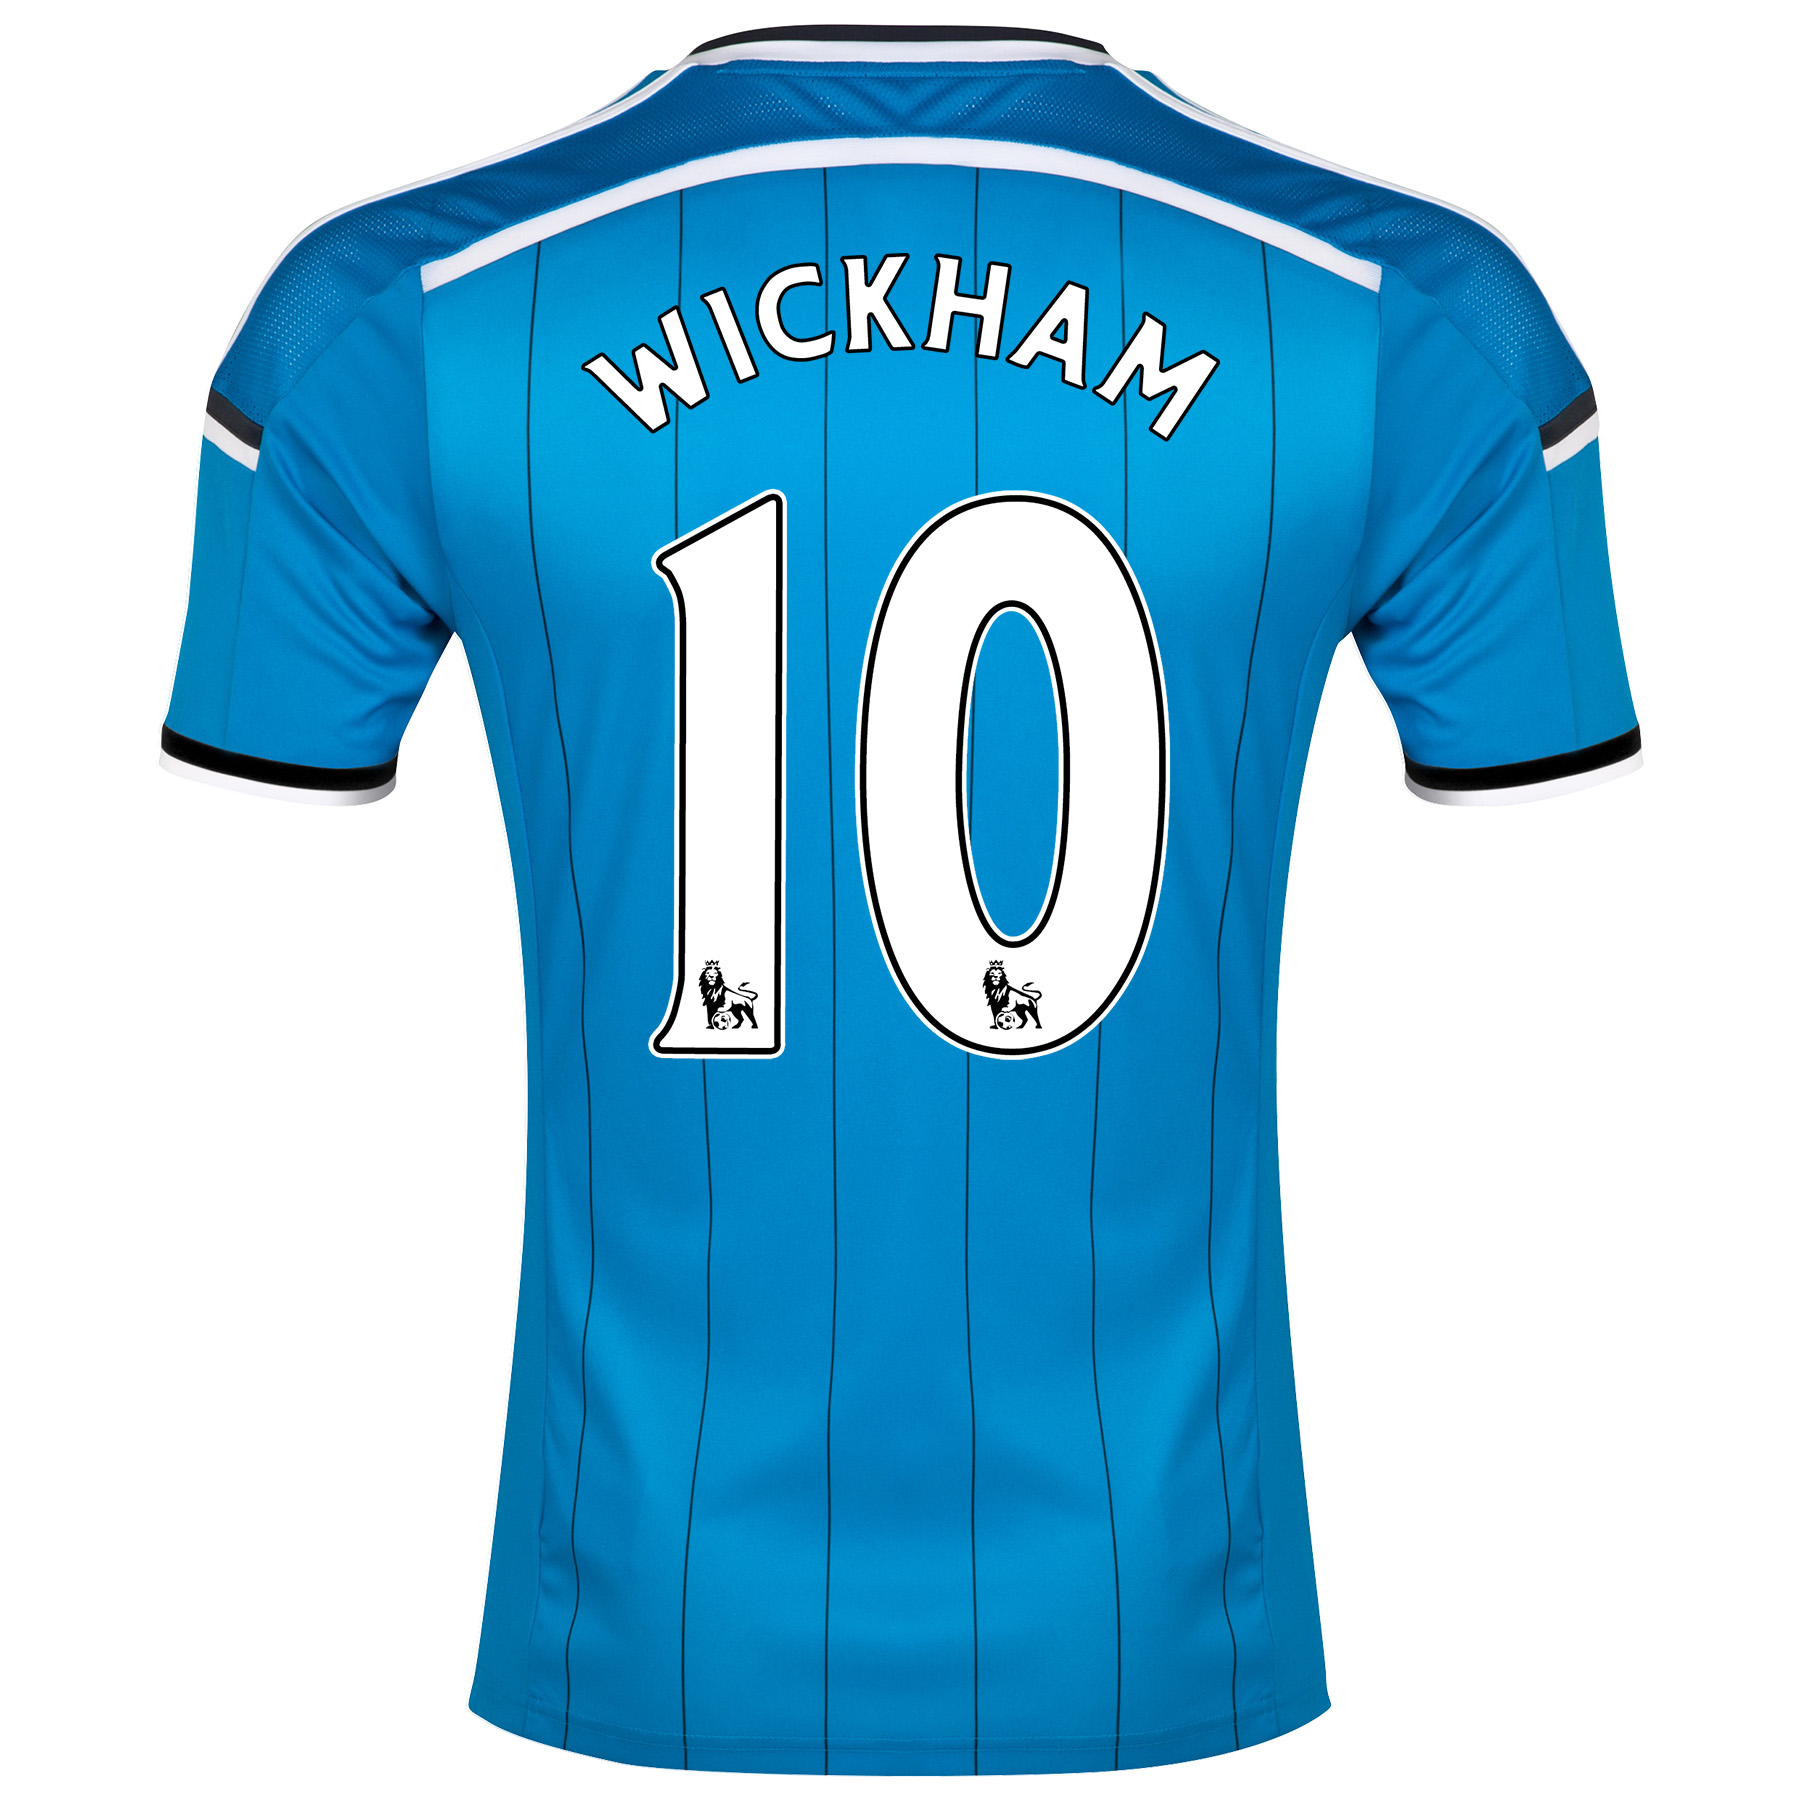 Sunderland Away Shirt 2014/15 - Junior Lt Blue with Wickham 10 printing